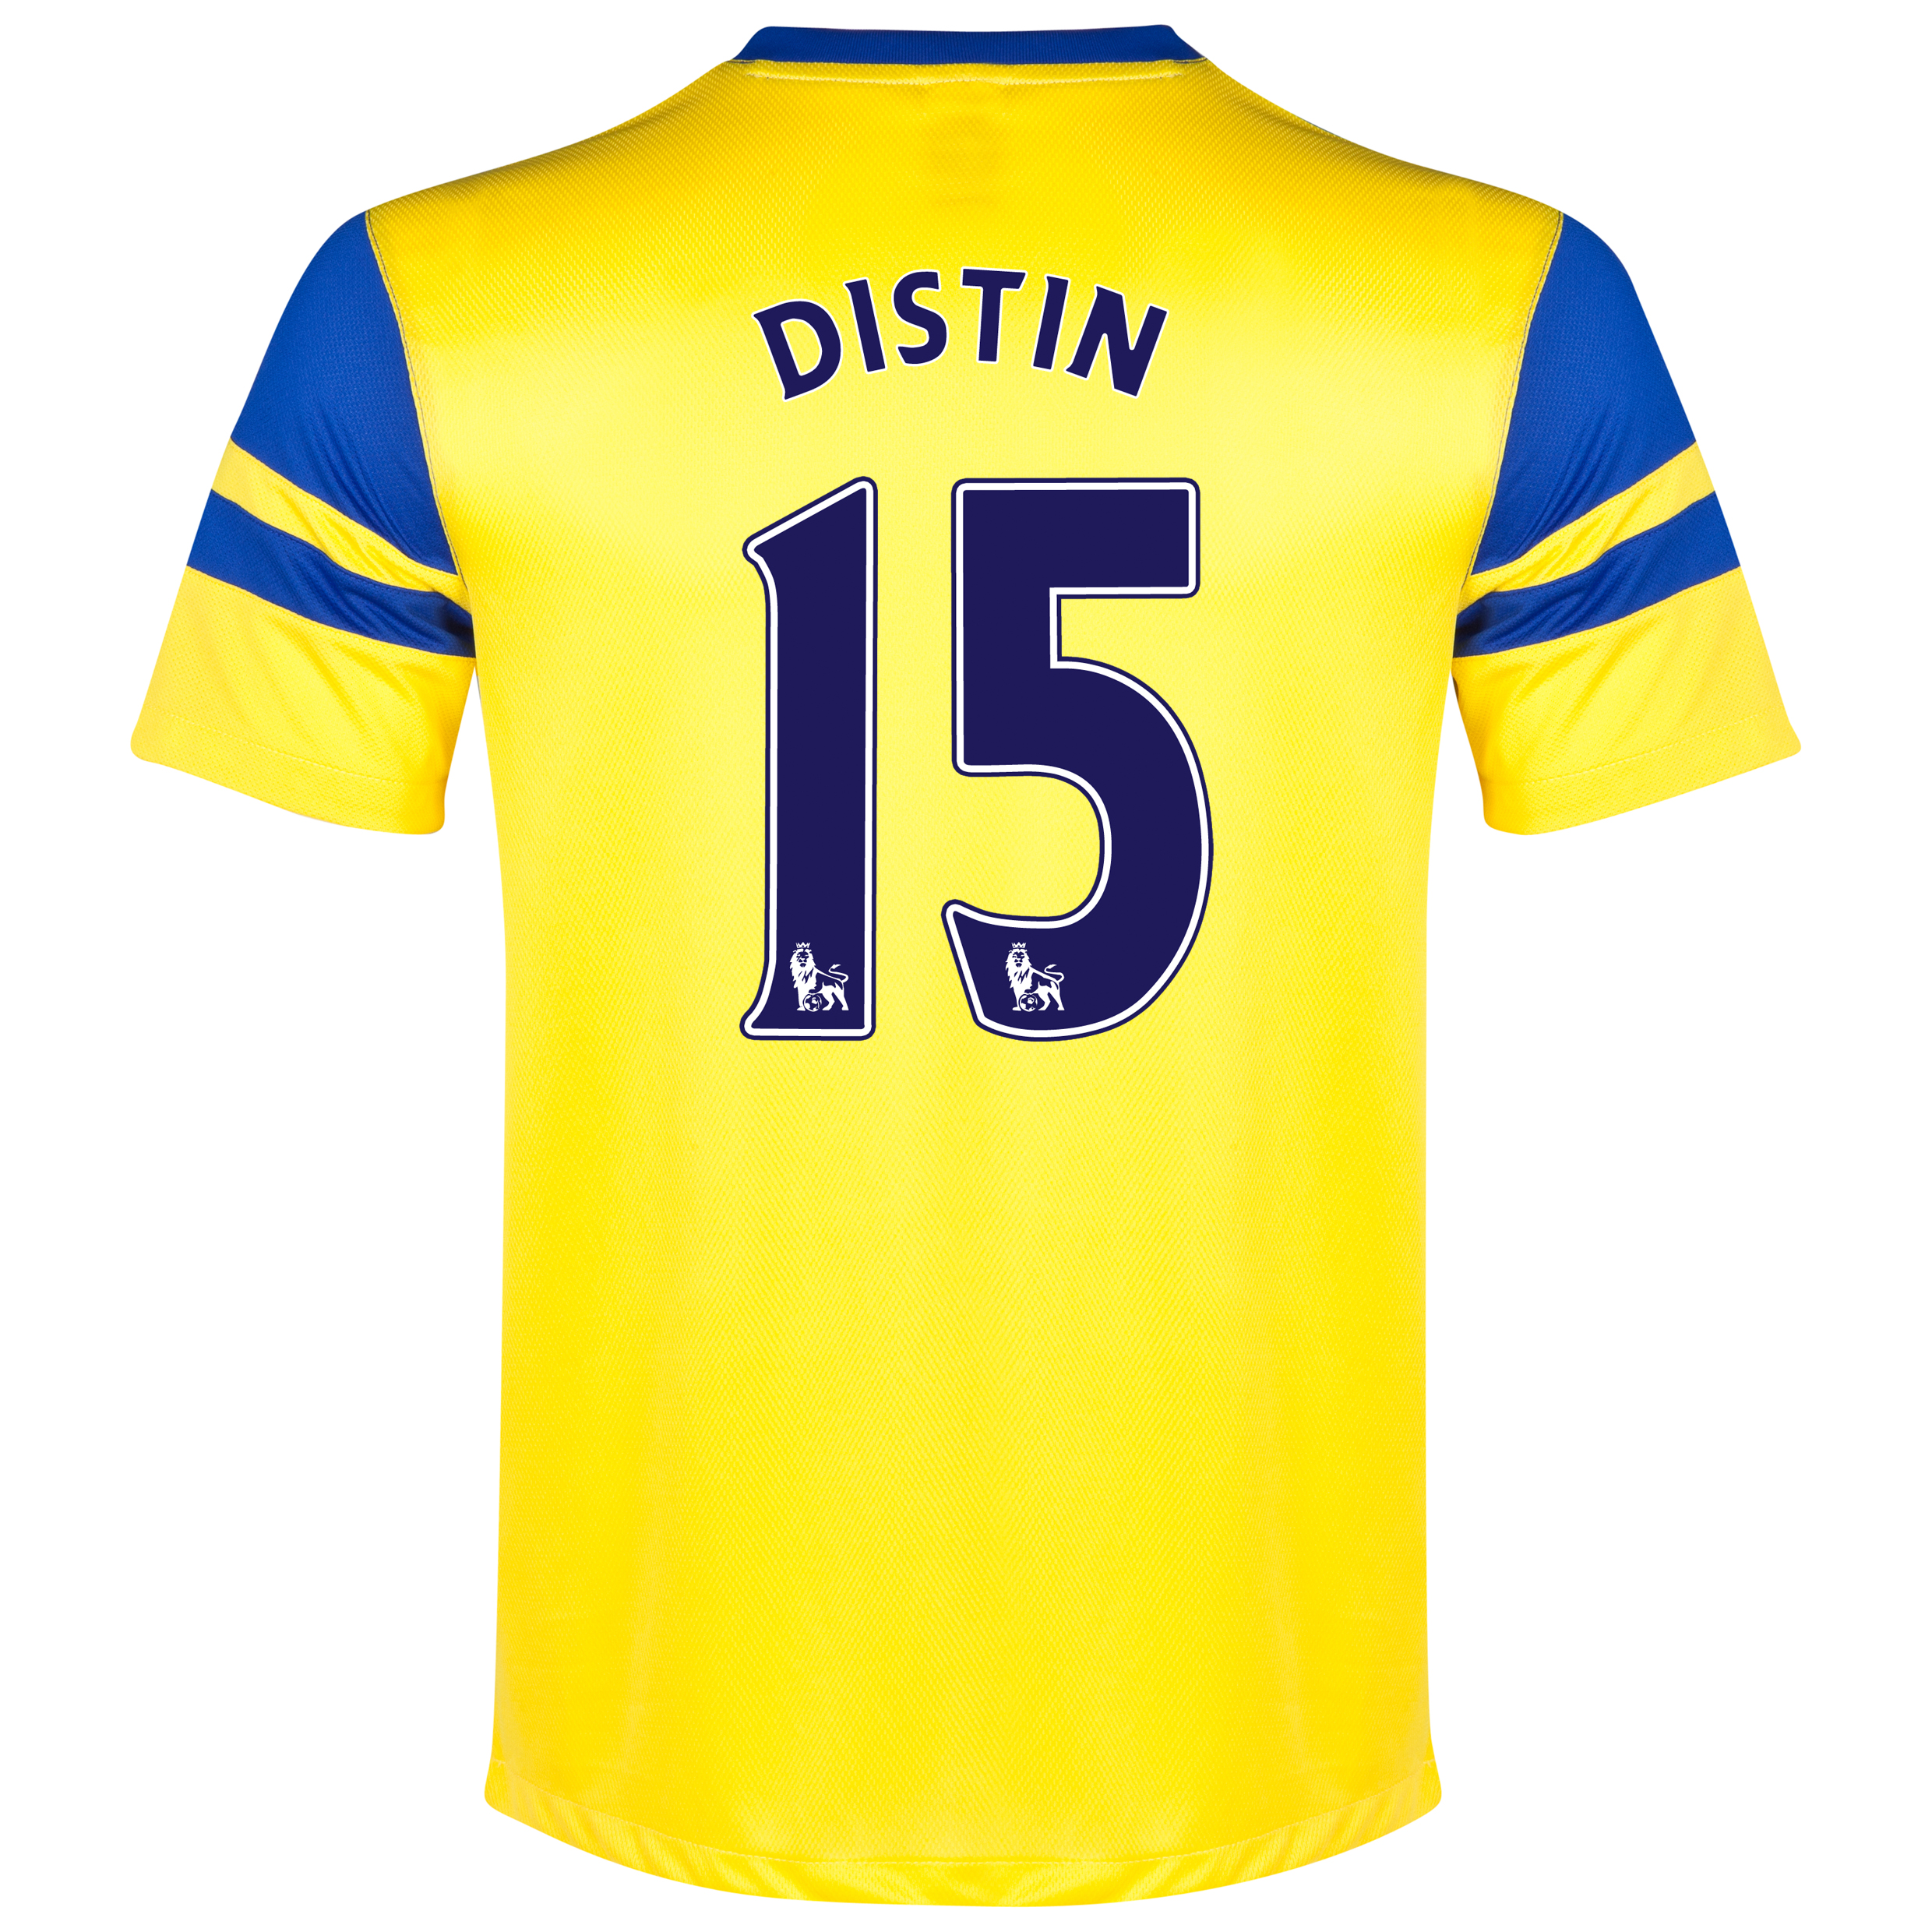 Everton Away Shirt 2013/14 Yellow with Distin 15 printing